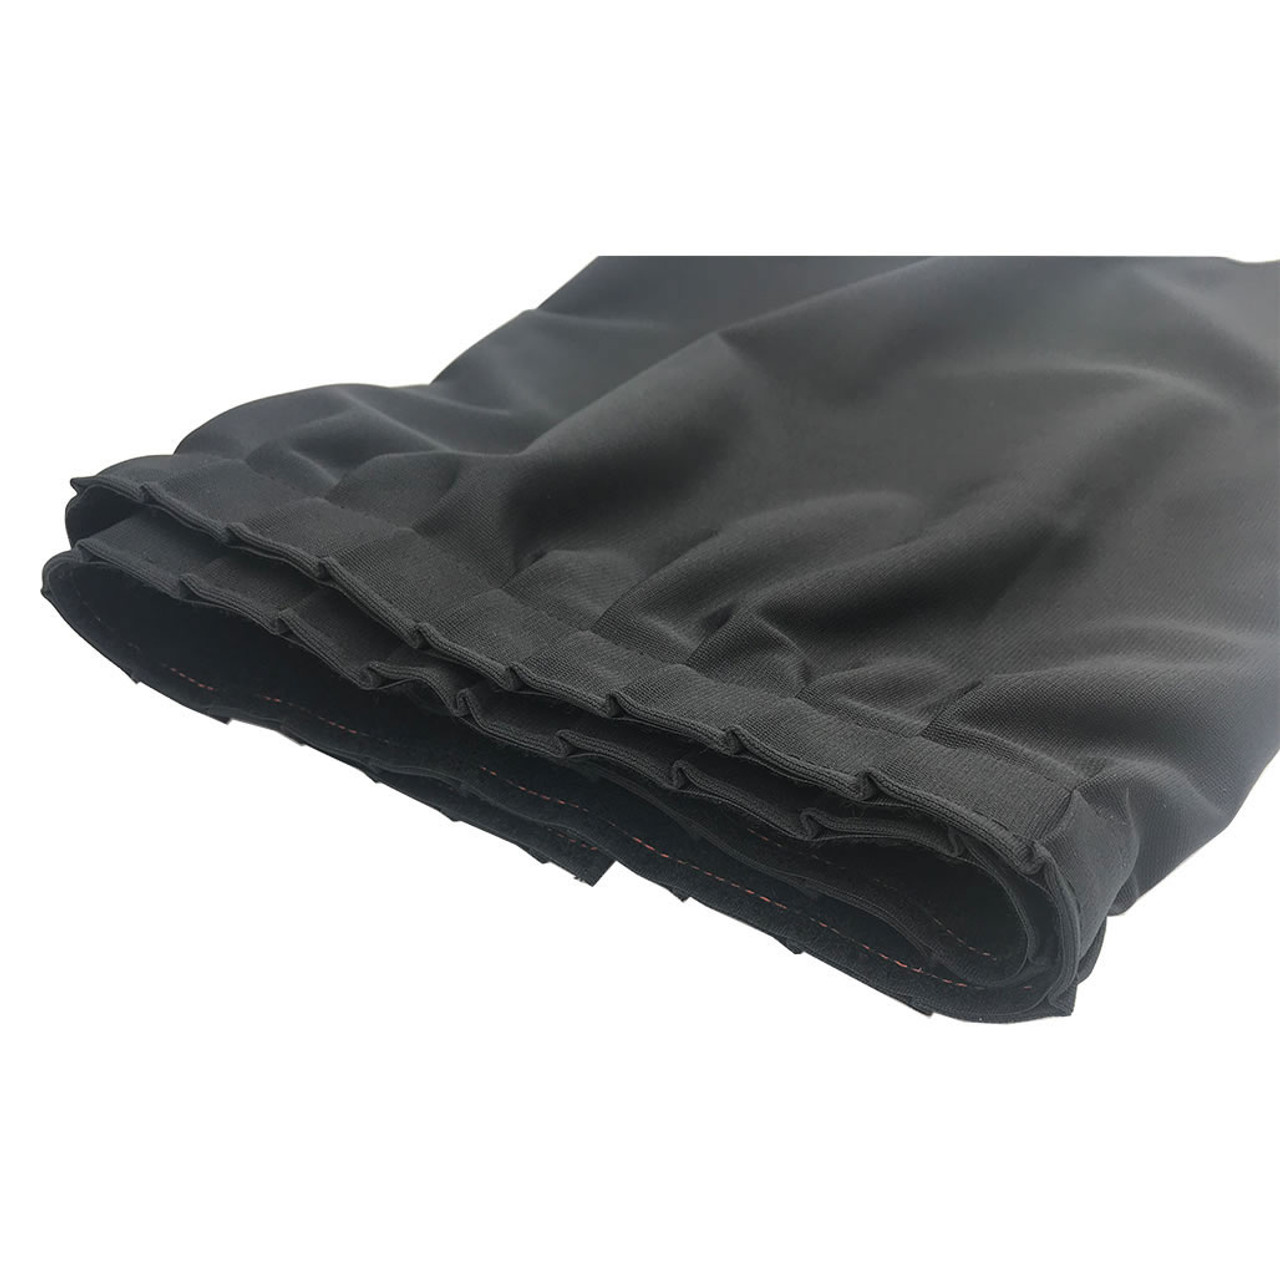 16 Inches High Best Value Black Expo Pleat Polyester Stage Skirting with Velcro. FR Rated. - Close up of Expo/Mini-Accordion Pleat.